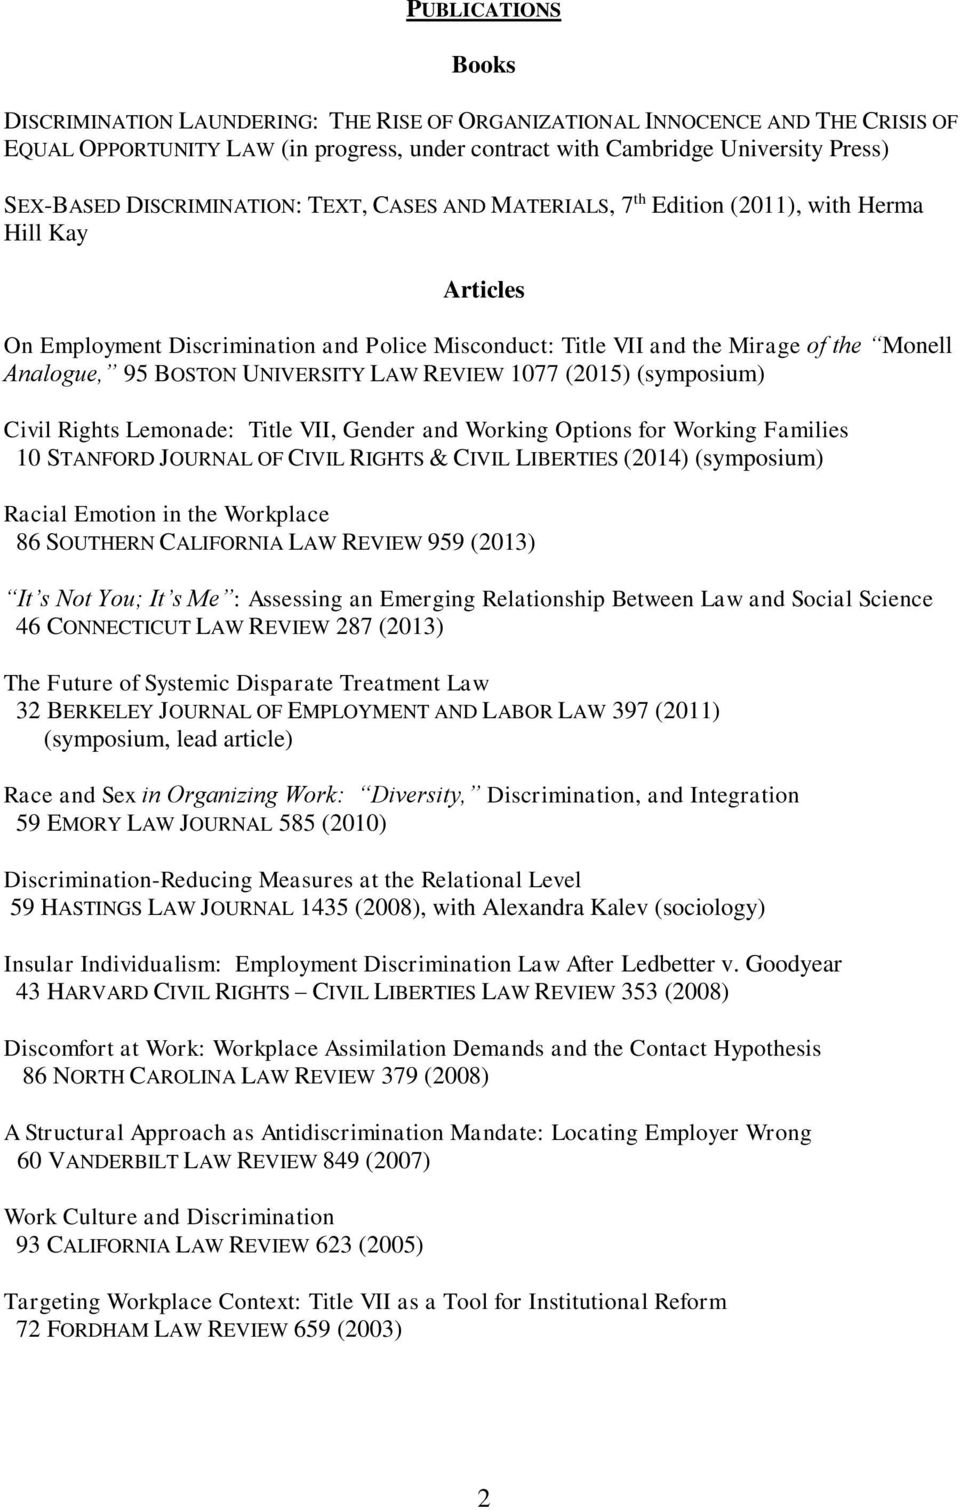 BOSTON UNIVERSITY LAW REVIEW 1077 (2015) (symposium) Civil Rights Lemonade: Title VII, Gender and Working Options for Working Families 10 STANFORD JOURNAL OF CIVIL RIGHTS & CIVIL LIBERTIES (2014)